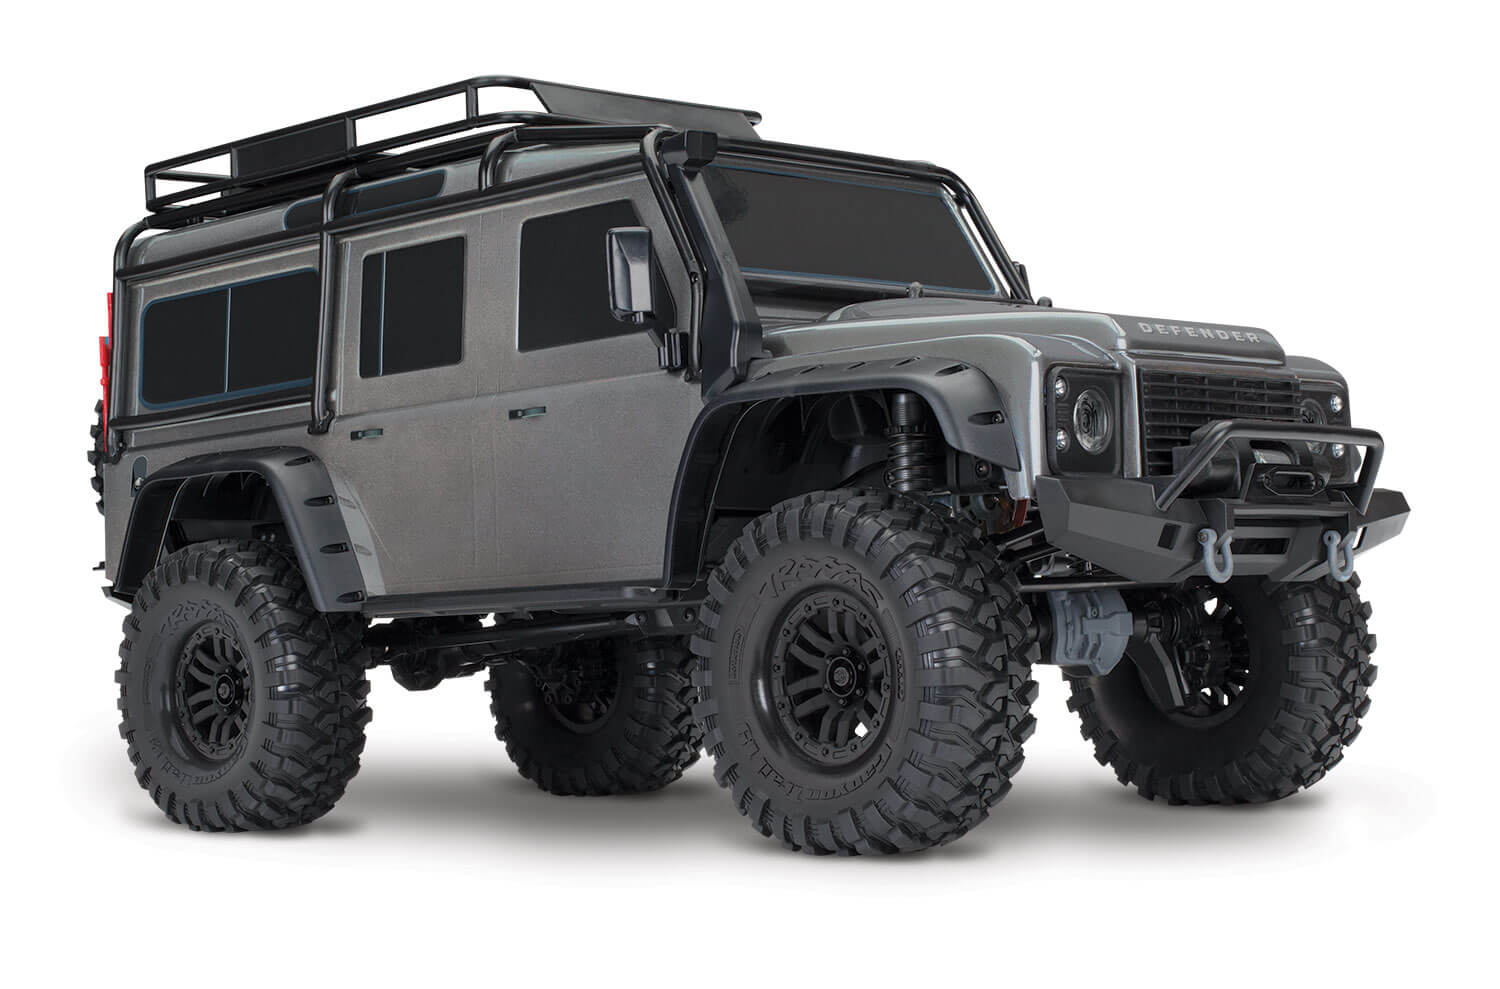 traxxas trx 4 crawler land rover defender 110 green mwmwarbirds. Black Bedroom Furniture Sets. Home Design Ideas